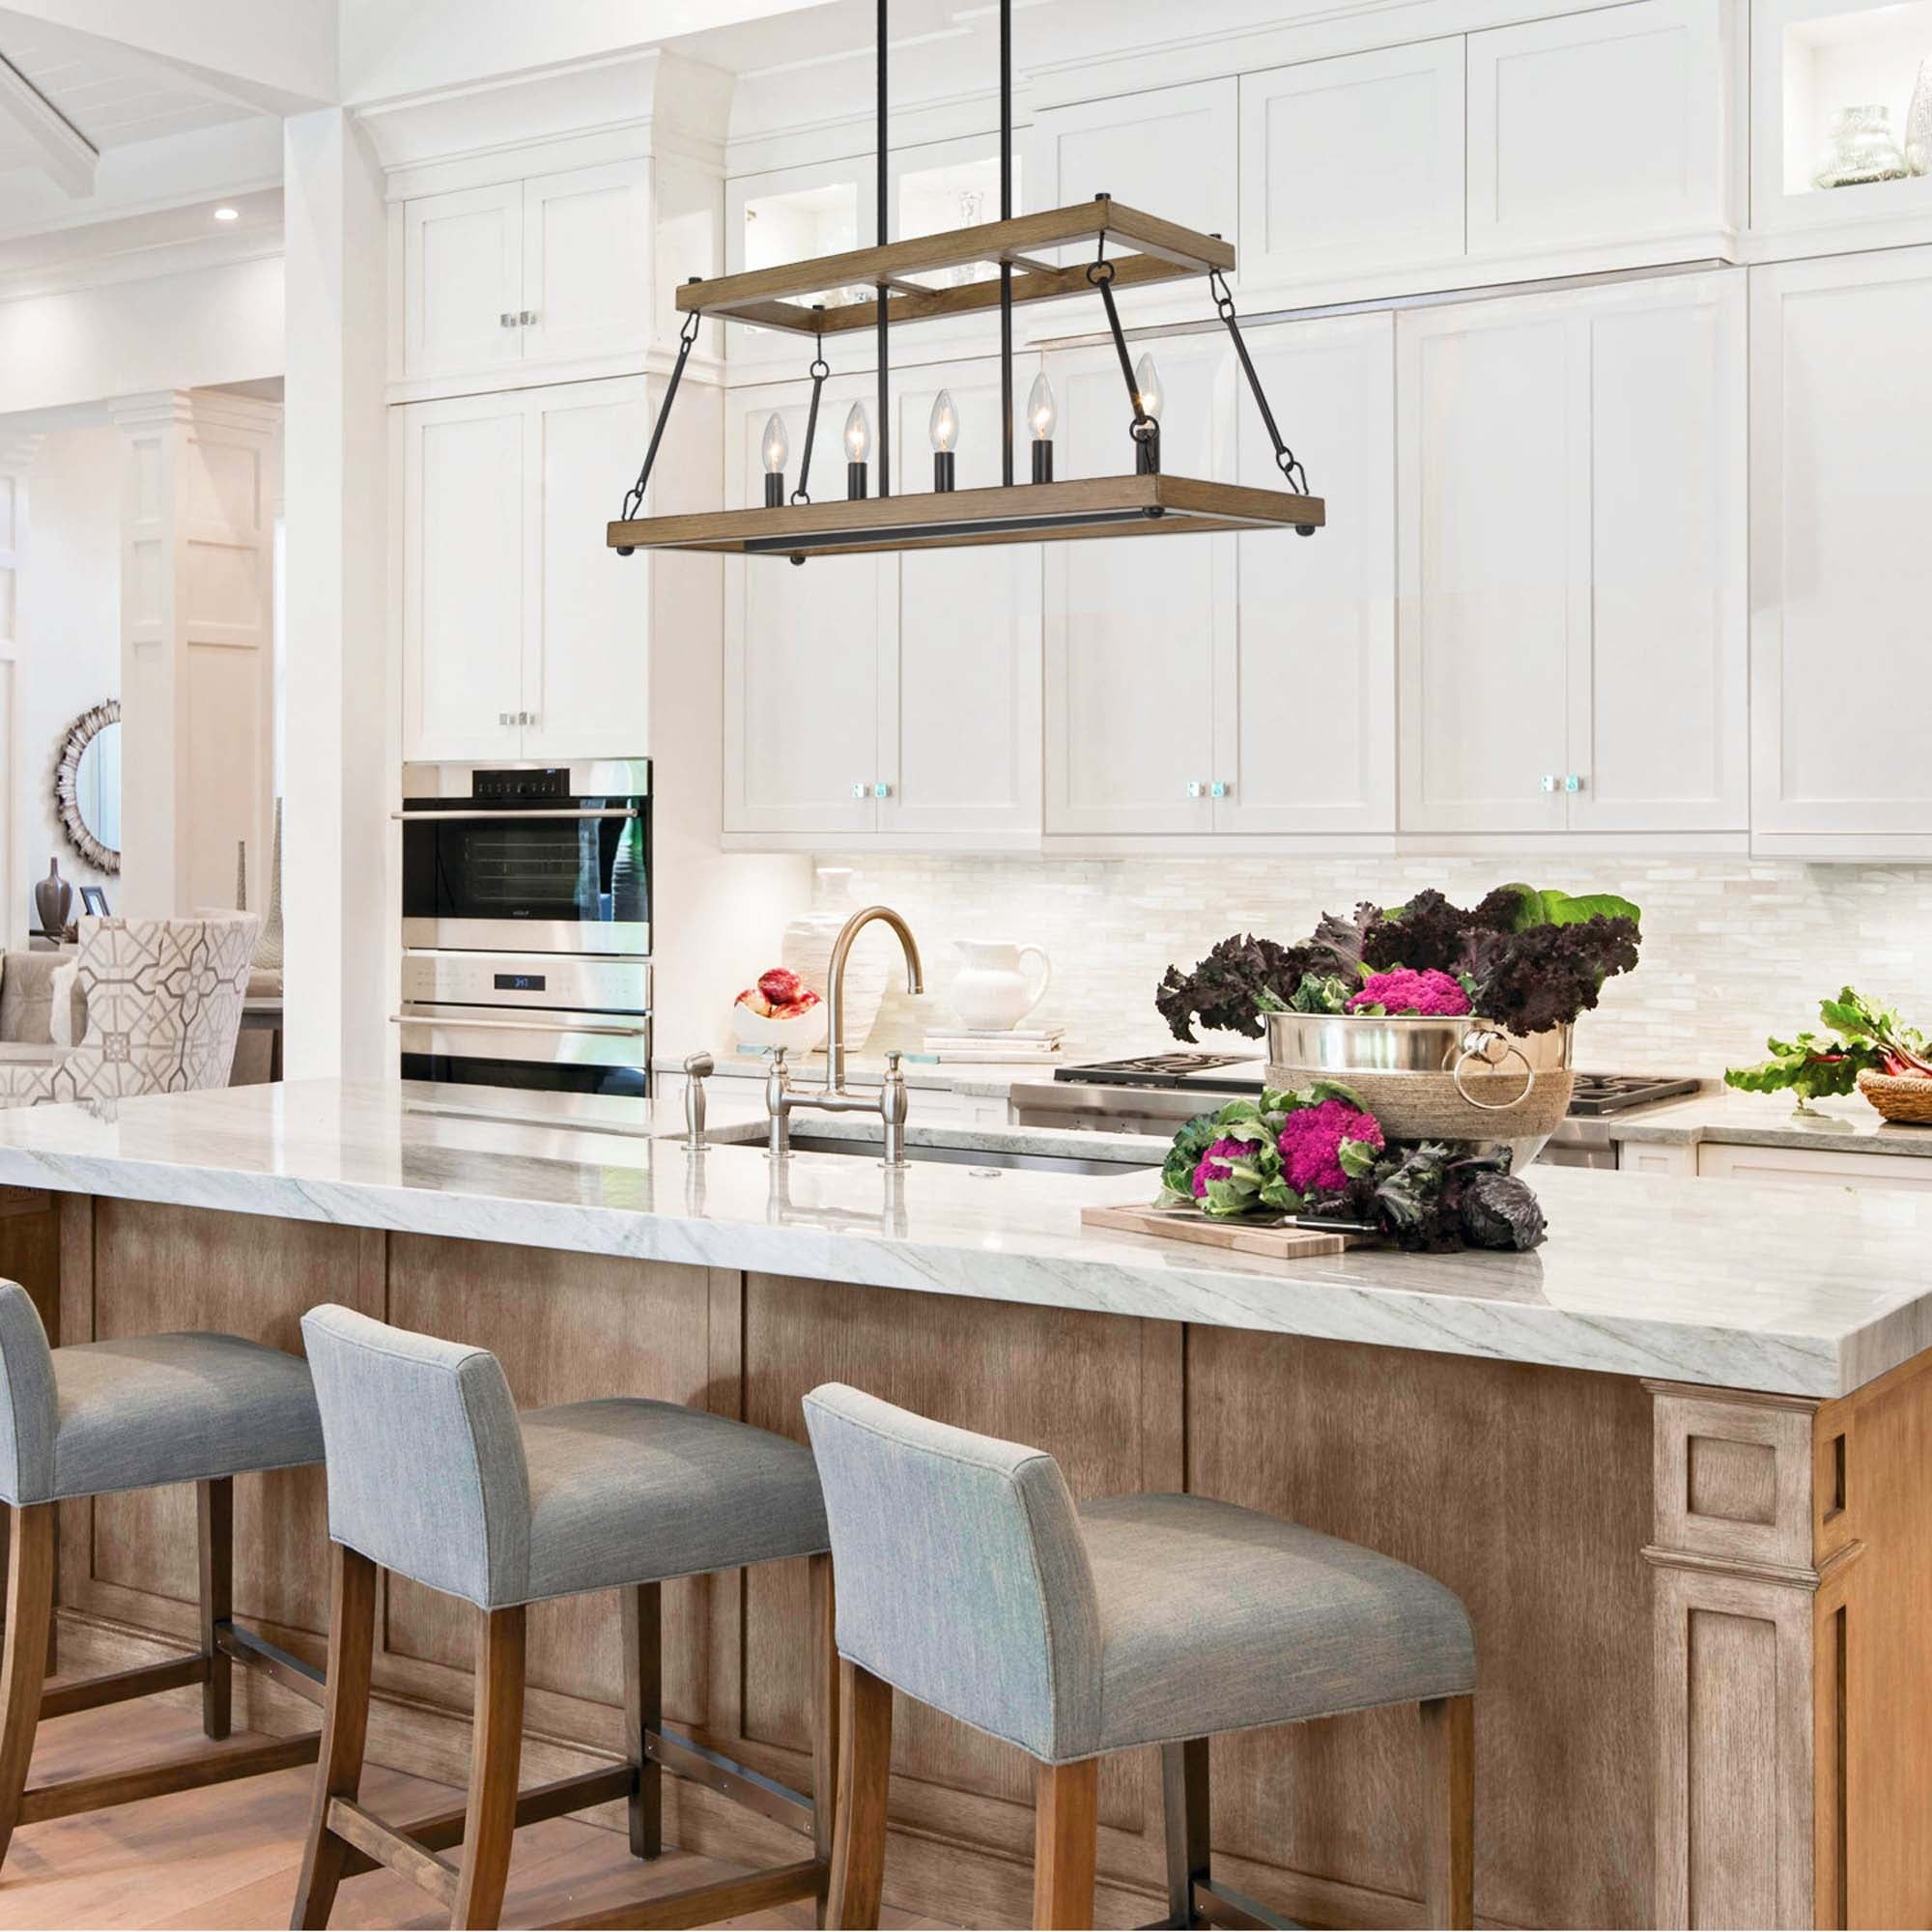 Modern Farmhouse 5 Light Faux Wood Grain And Antique Black Linear Chandelier For Kitchen Island L30 Xw12 Xh12 5 Overstock 32330492